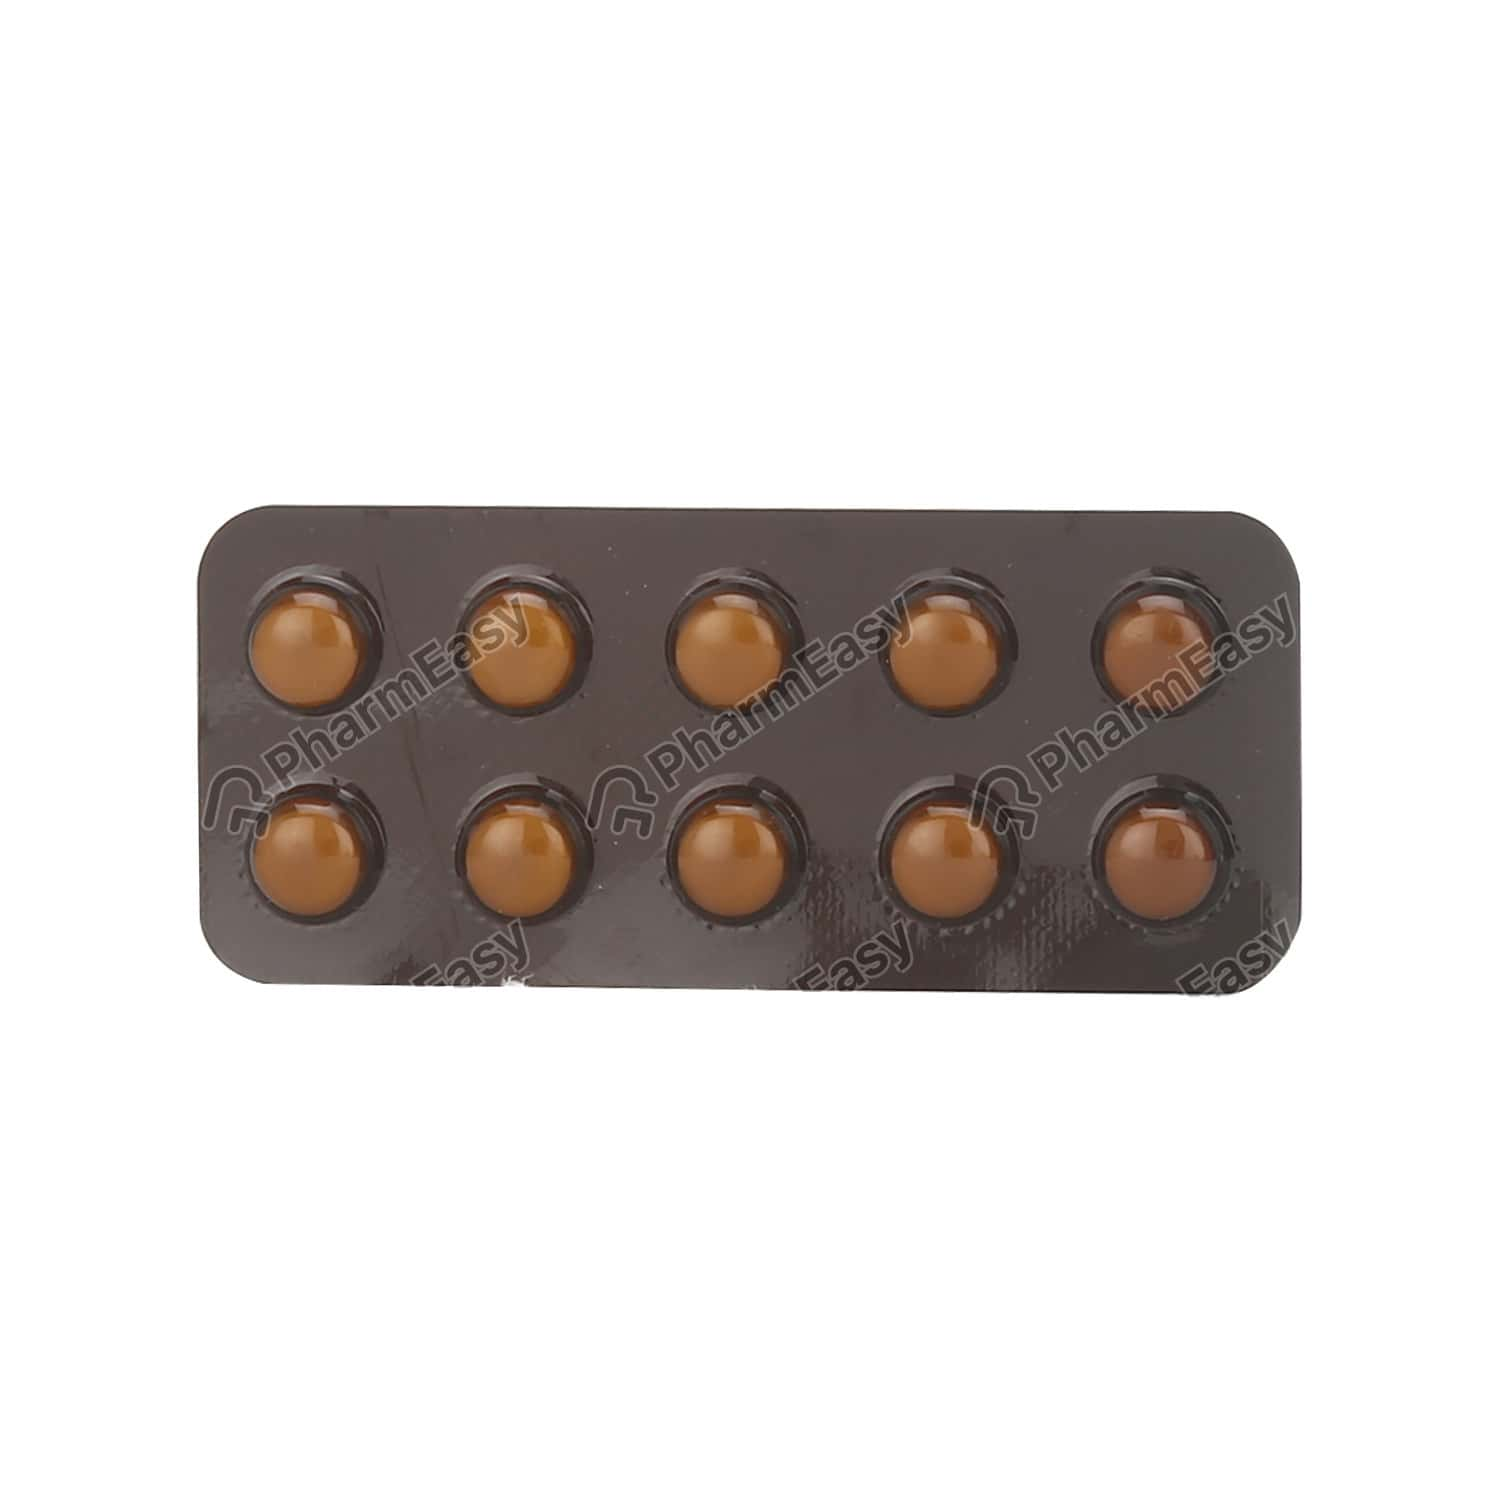 Mono Isordil 20mg Tablet